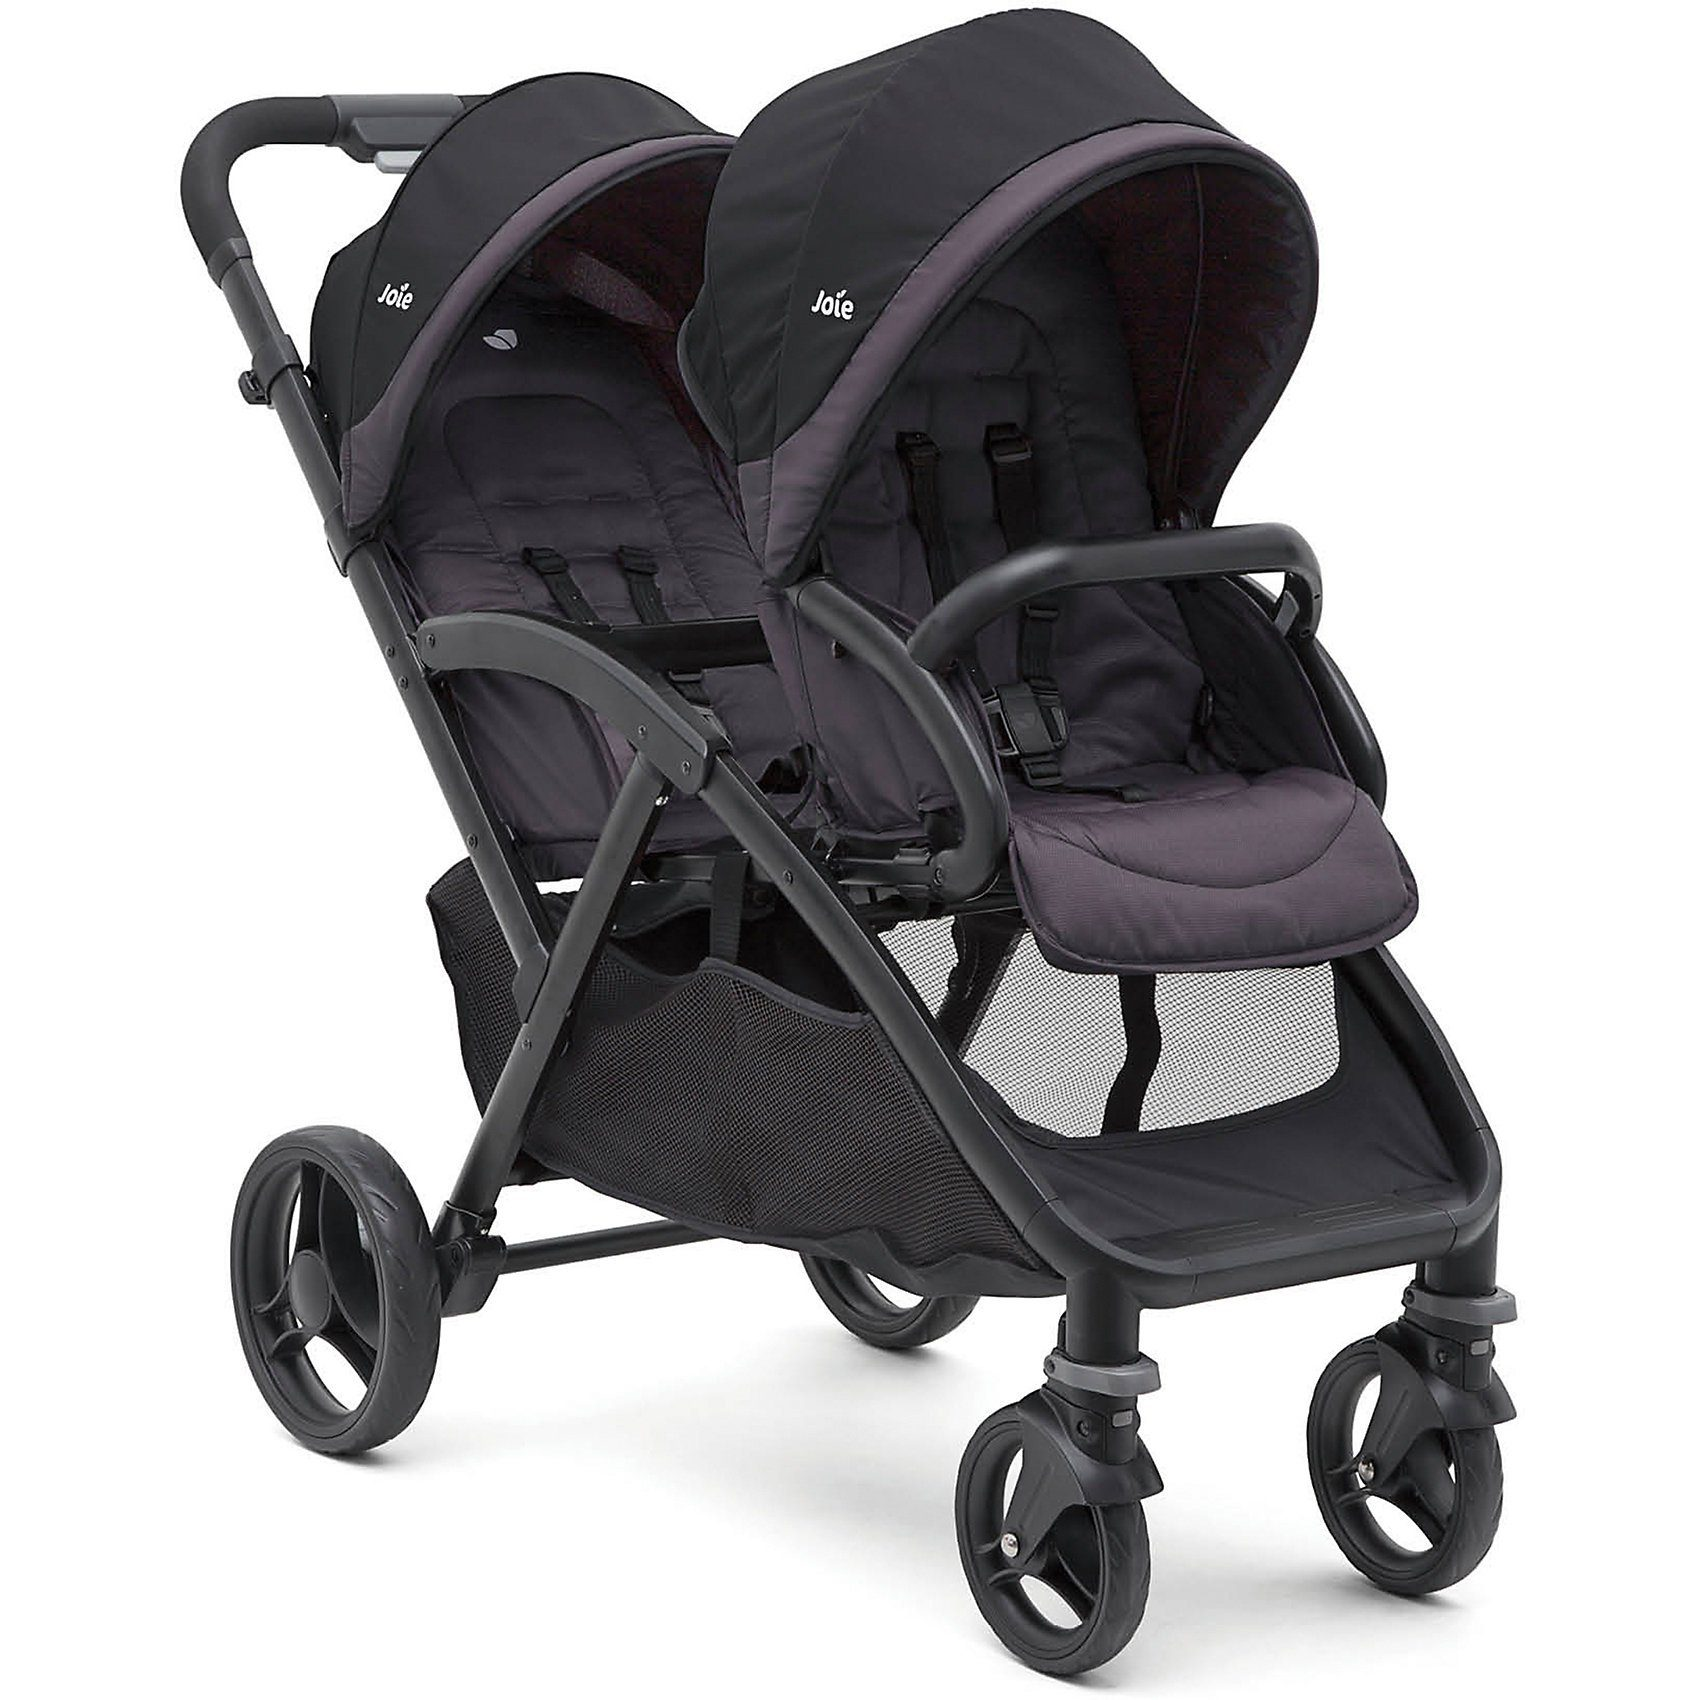 Joie Zwillings- & Geschwisterwagen Evalite Duo, Two Tone Black